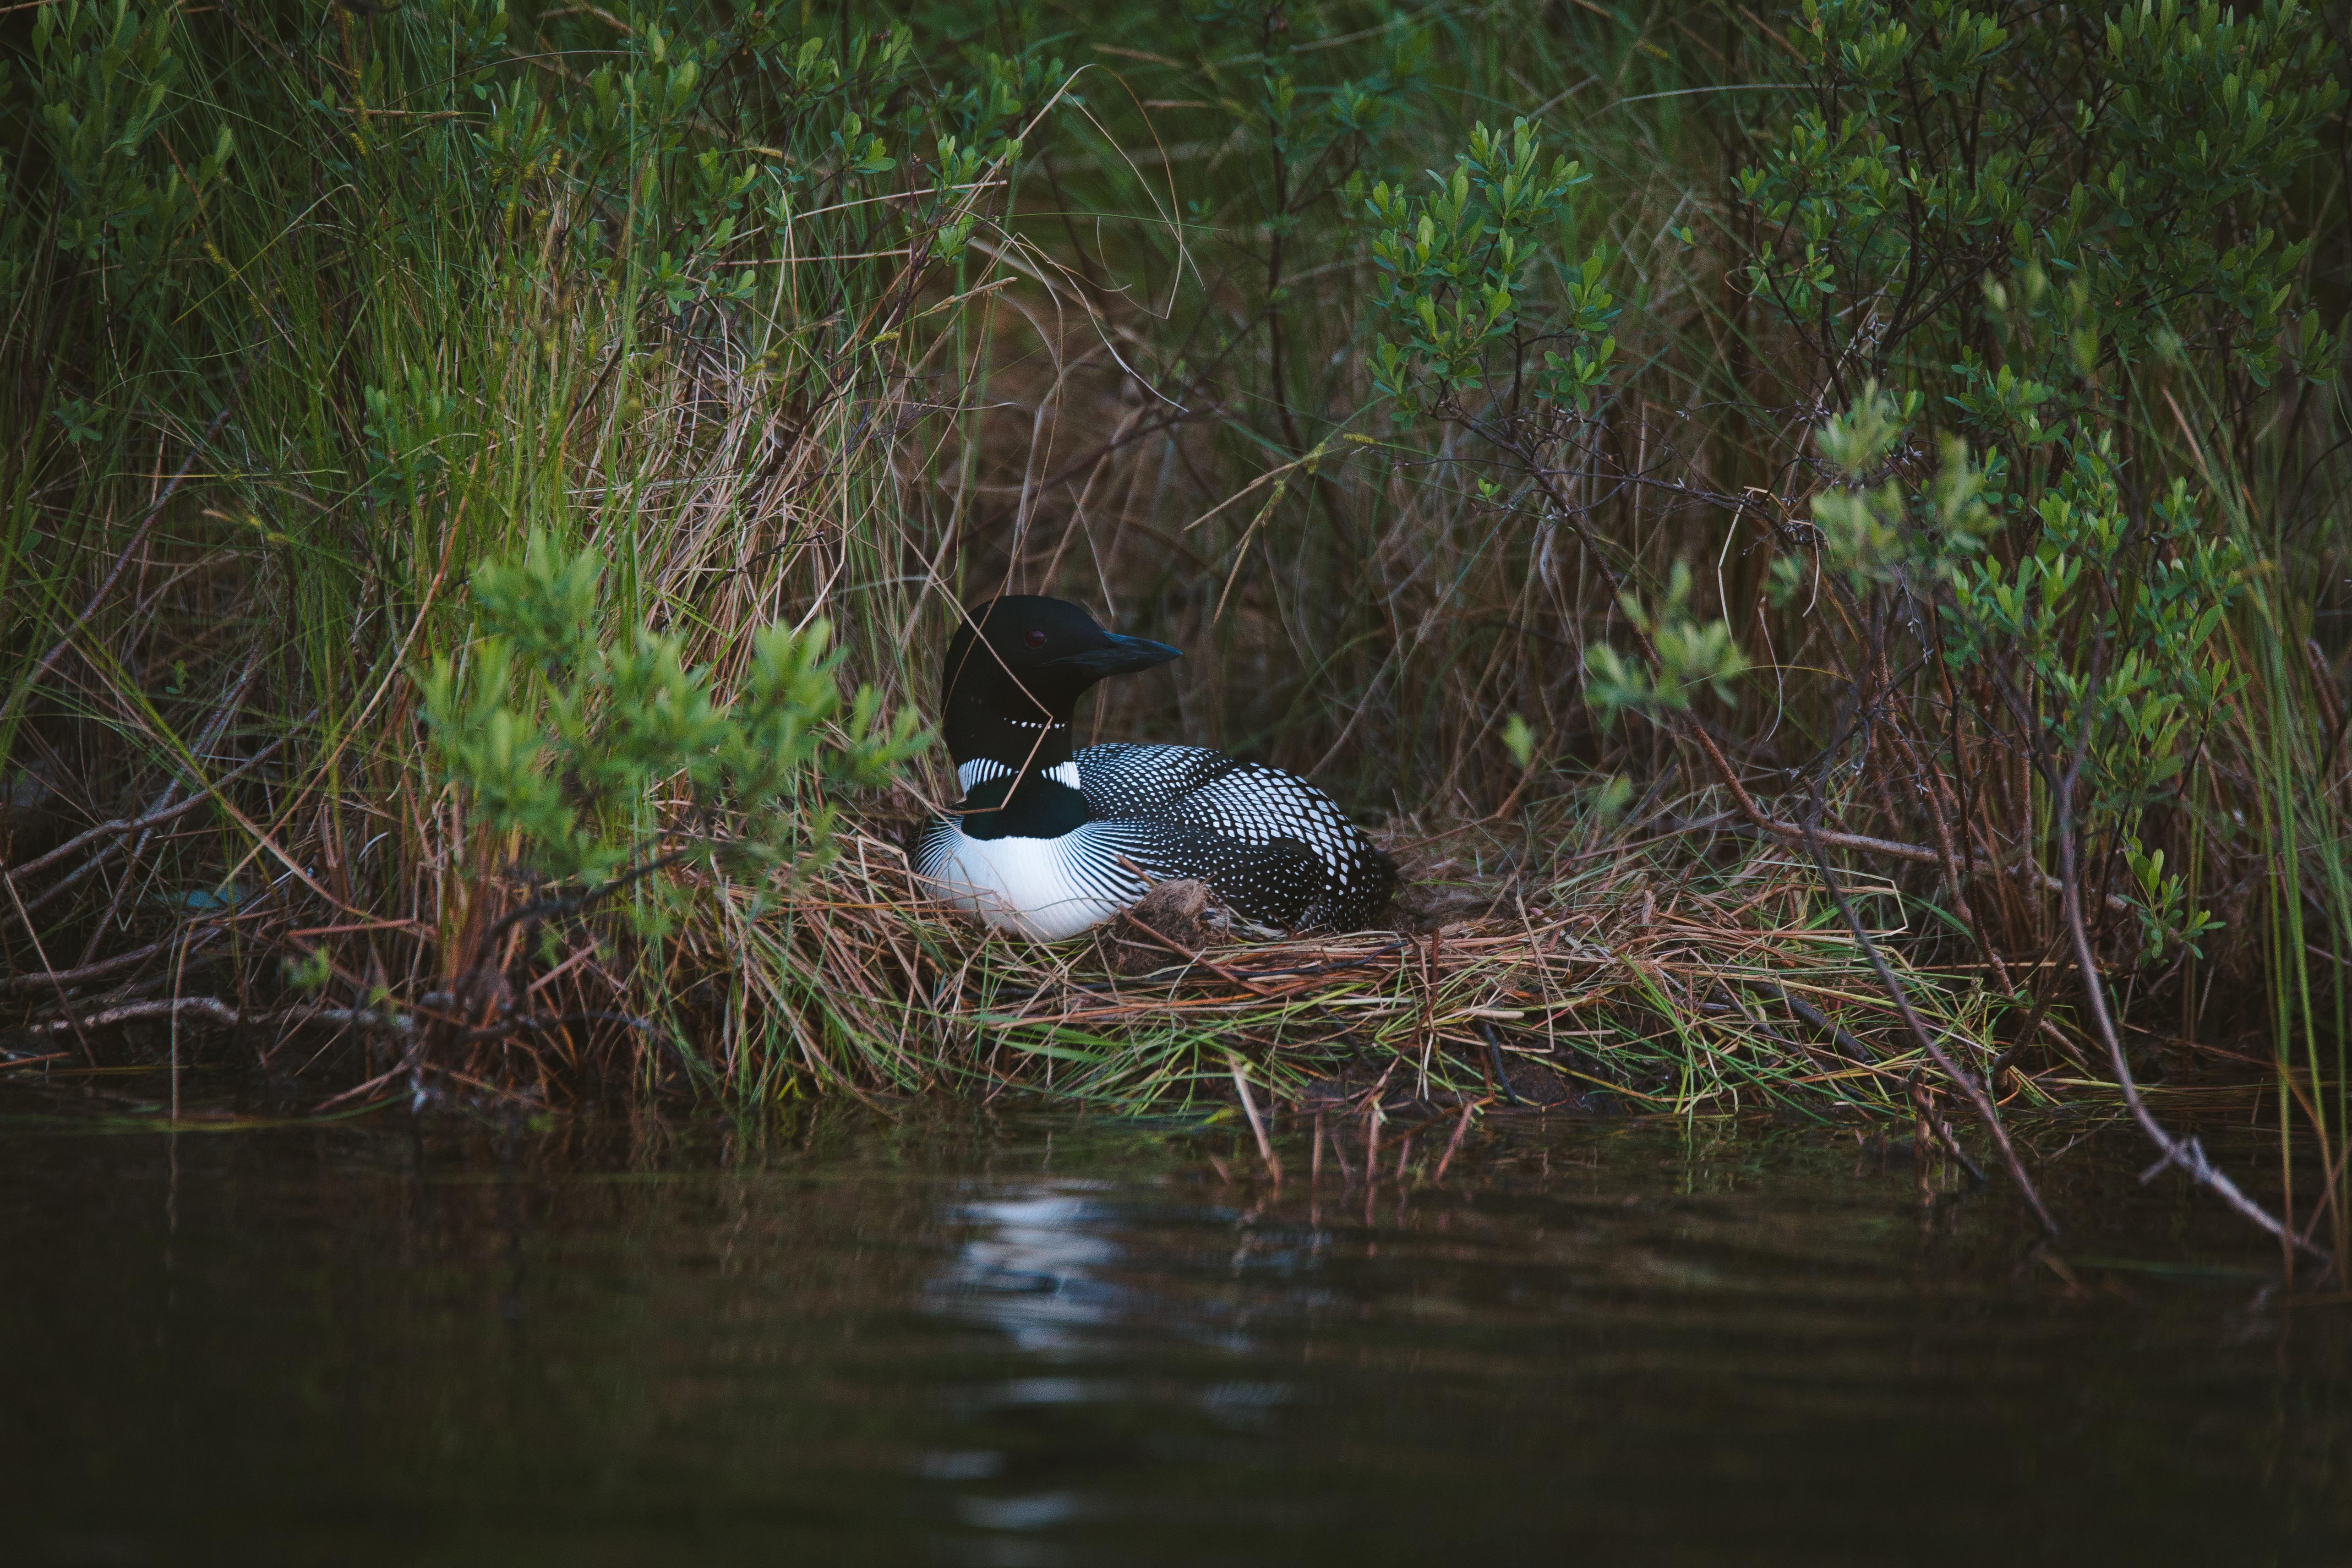 Nesting loon on Section 12 lake